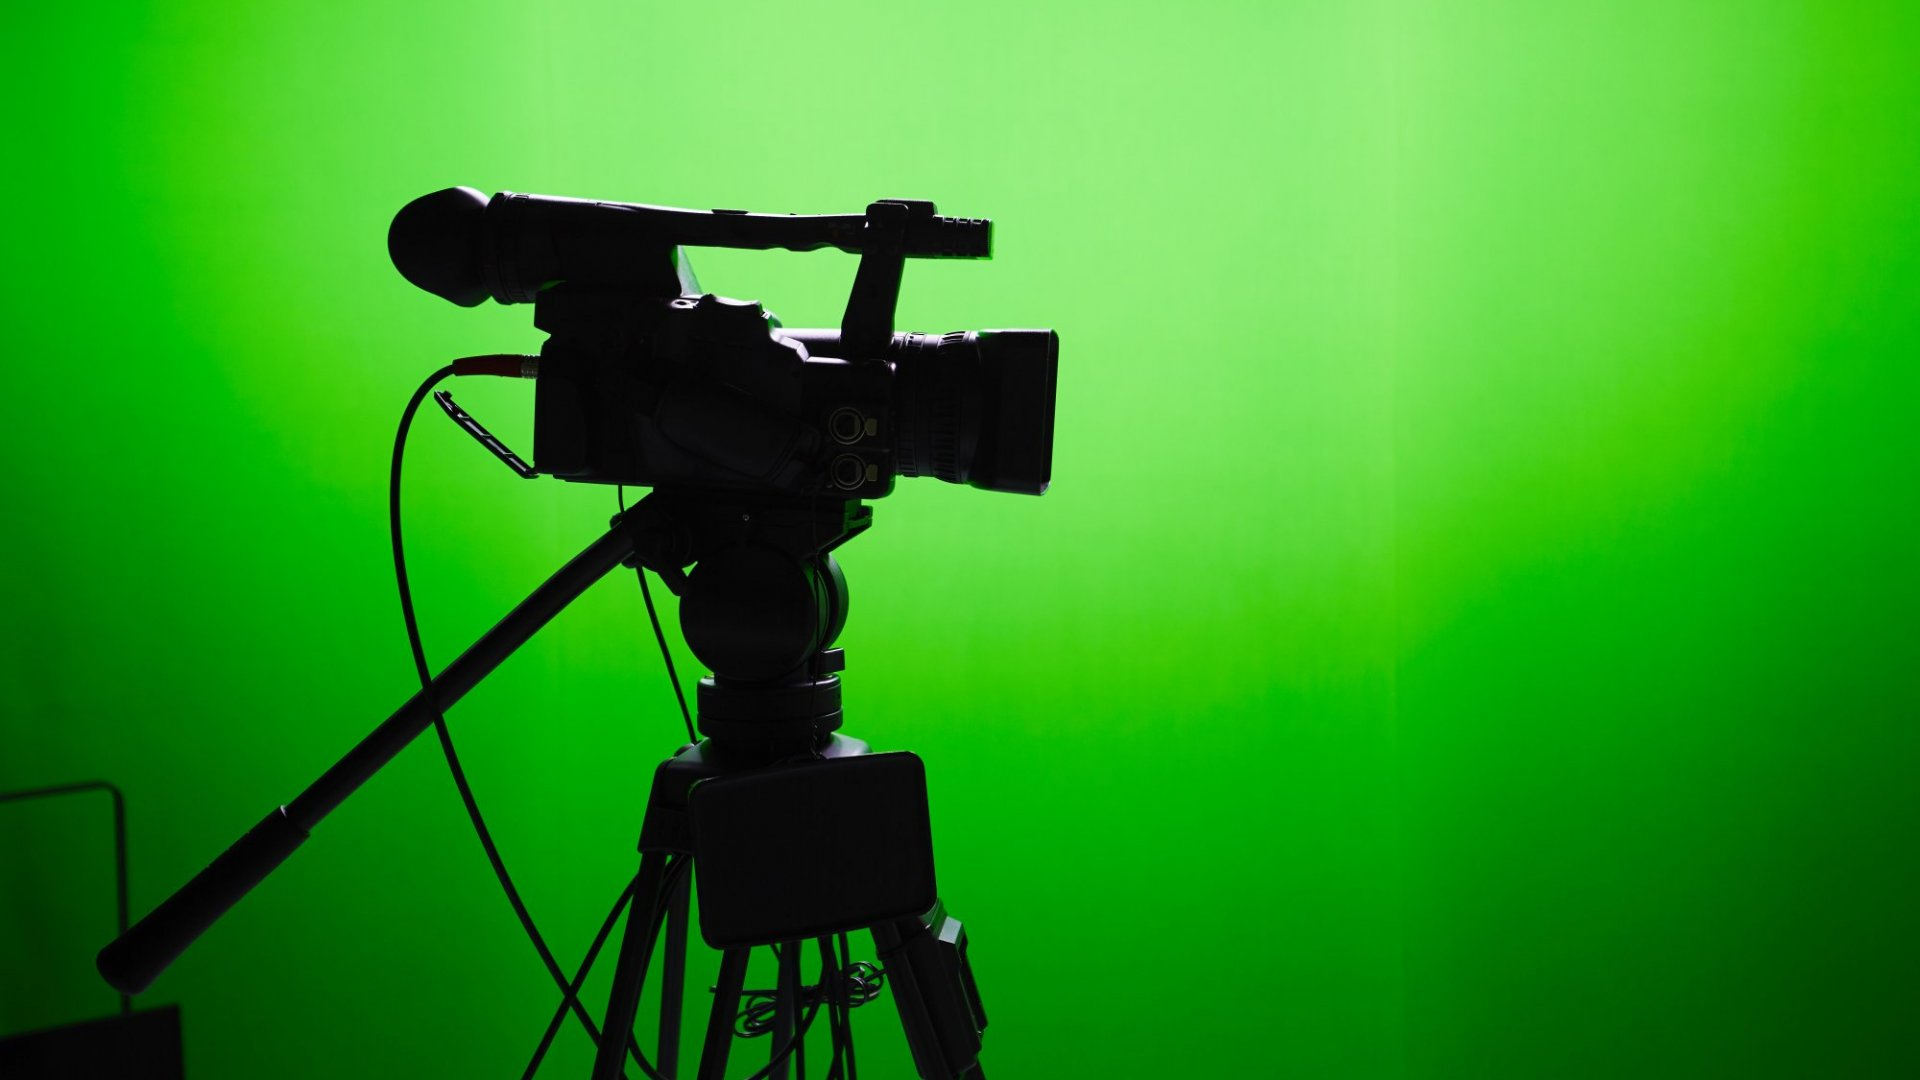 4 Tips for Video Marketing on a Budget